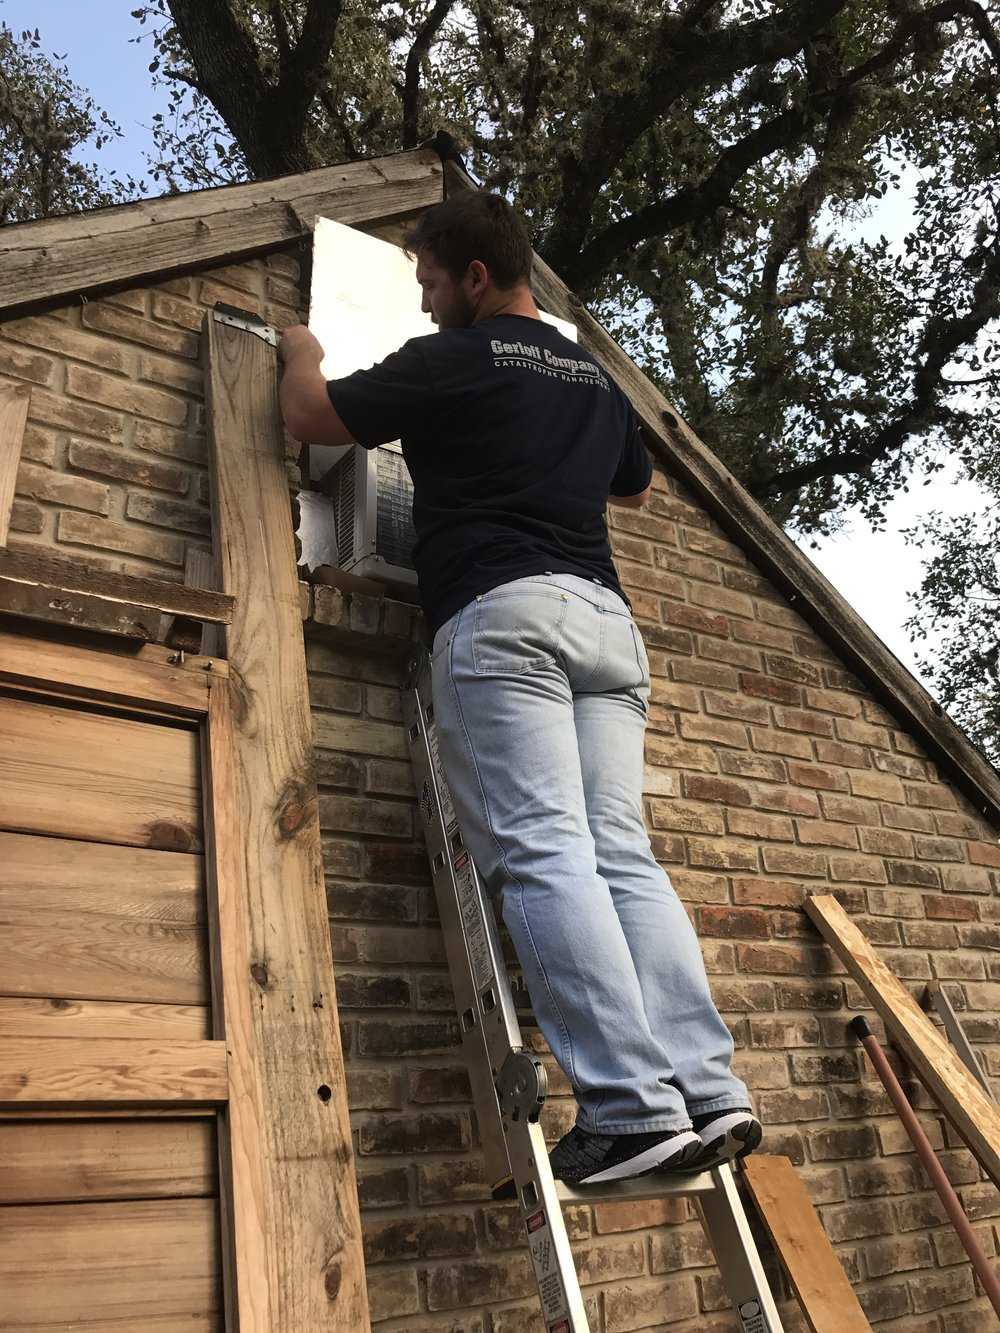 Logan installing one of our window units through an old side vent!